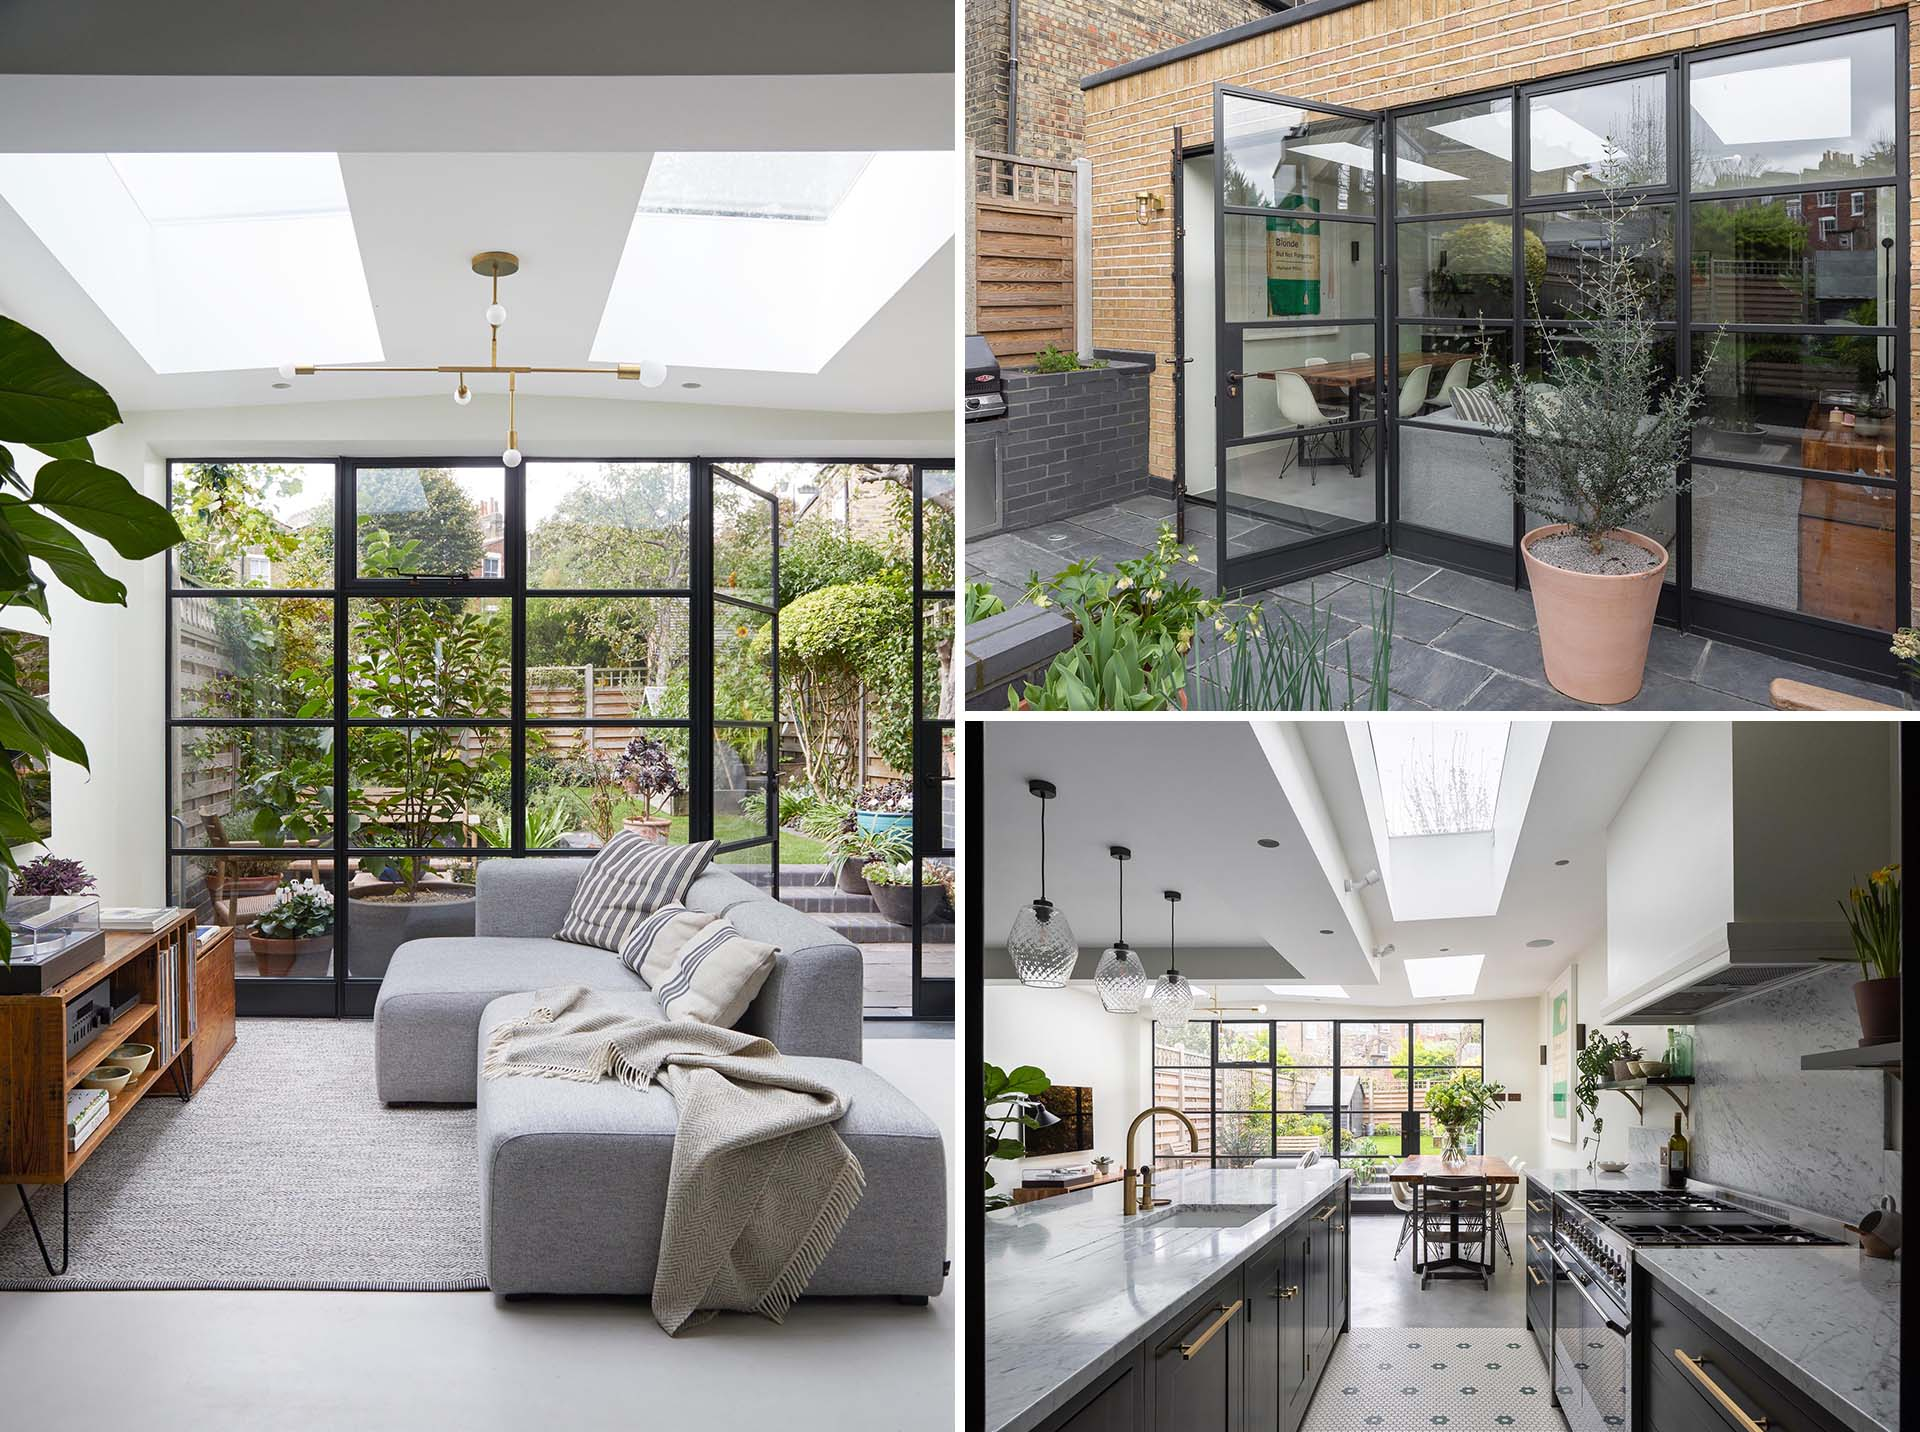 Large Skylights Add Natural Light To This Home Addition That Allowed For A New Living Room, Dining Room, And Kitchen